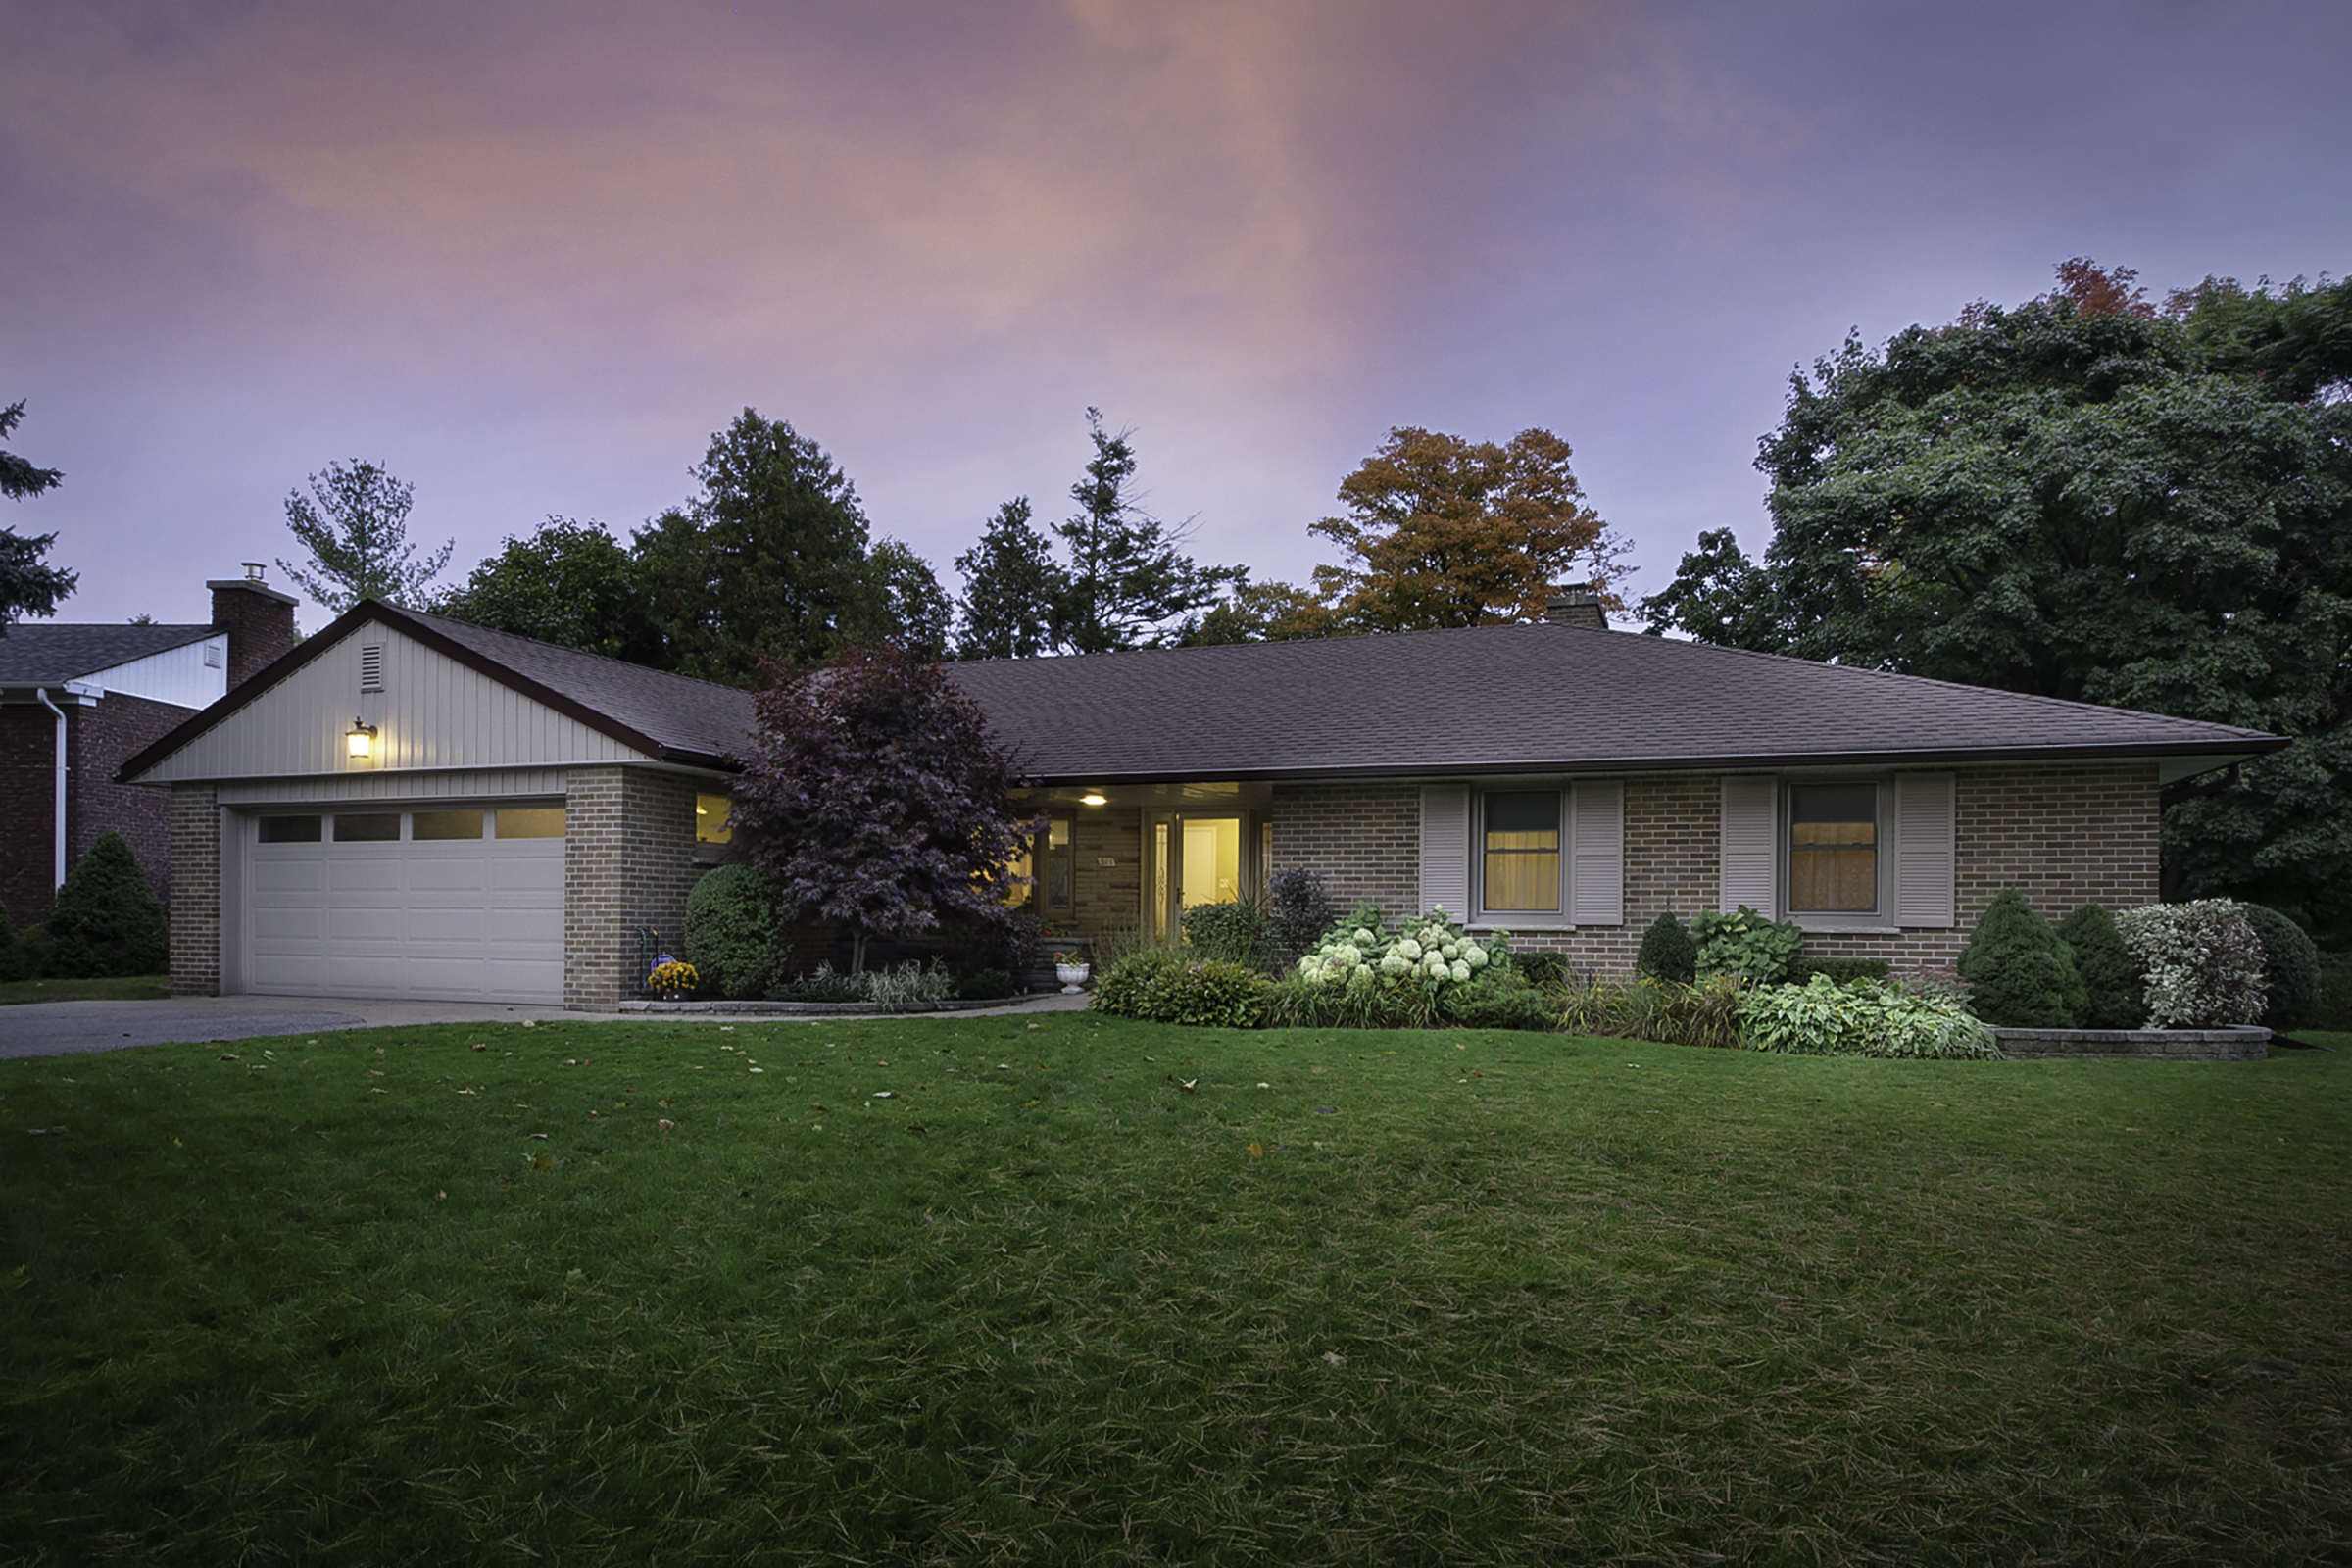 A photo of a large bungalow home taken at twilight